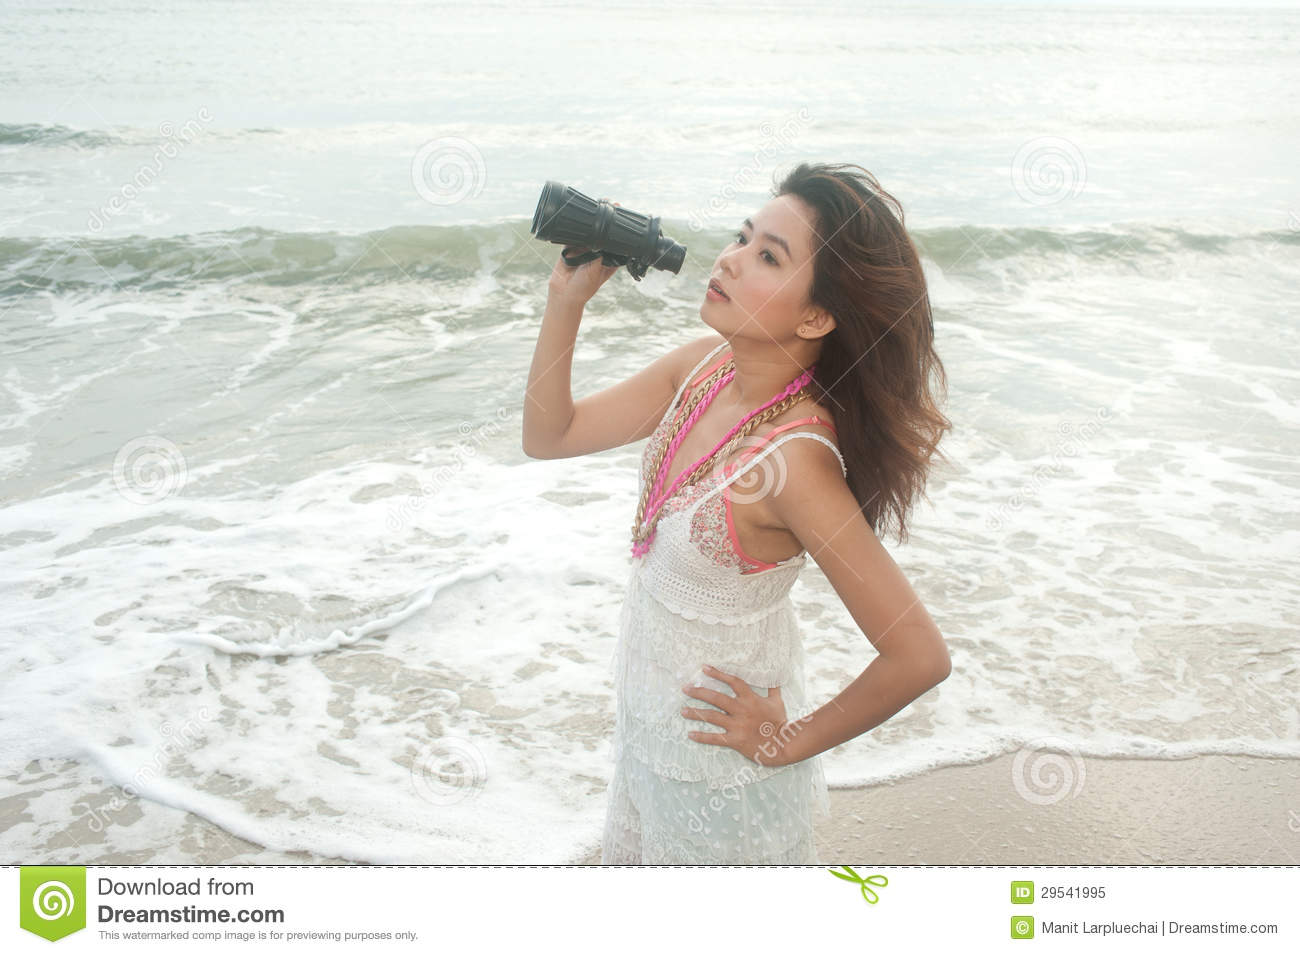 asian single women in beach Flingcom - world's best casual personals for casual dating, search millions of casual personals from singles, couples, and swingers looking for fun, browse sexy photos, personals and more.